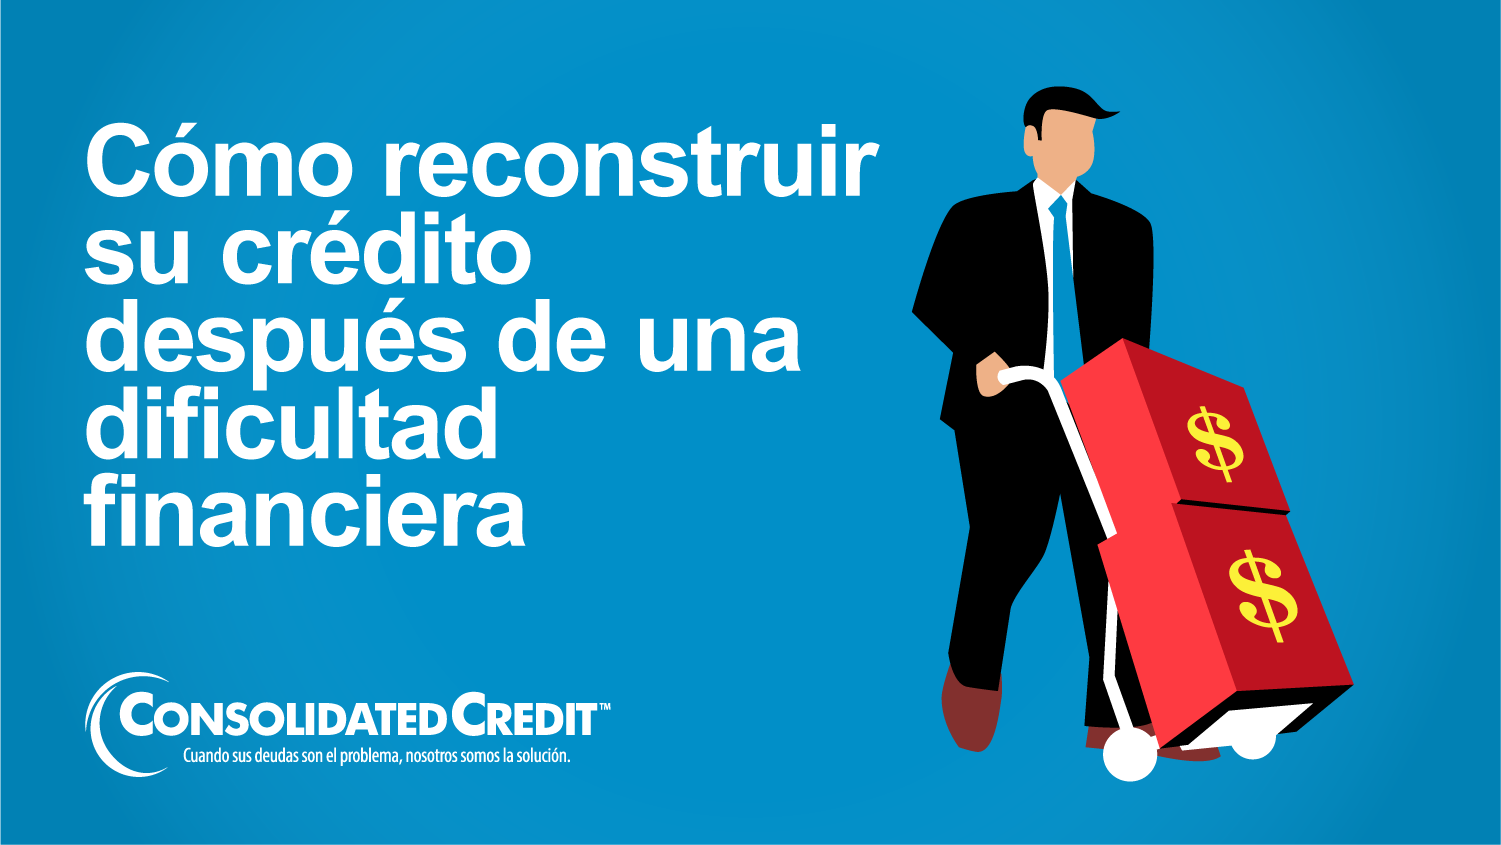 https://www.consolidatedcredit.org/es/wp-content/uploads/2020/08/TitleCard02_SP-IB.png